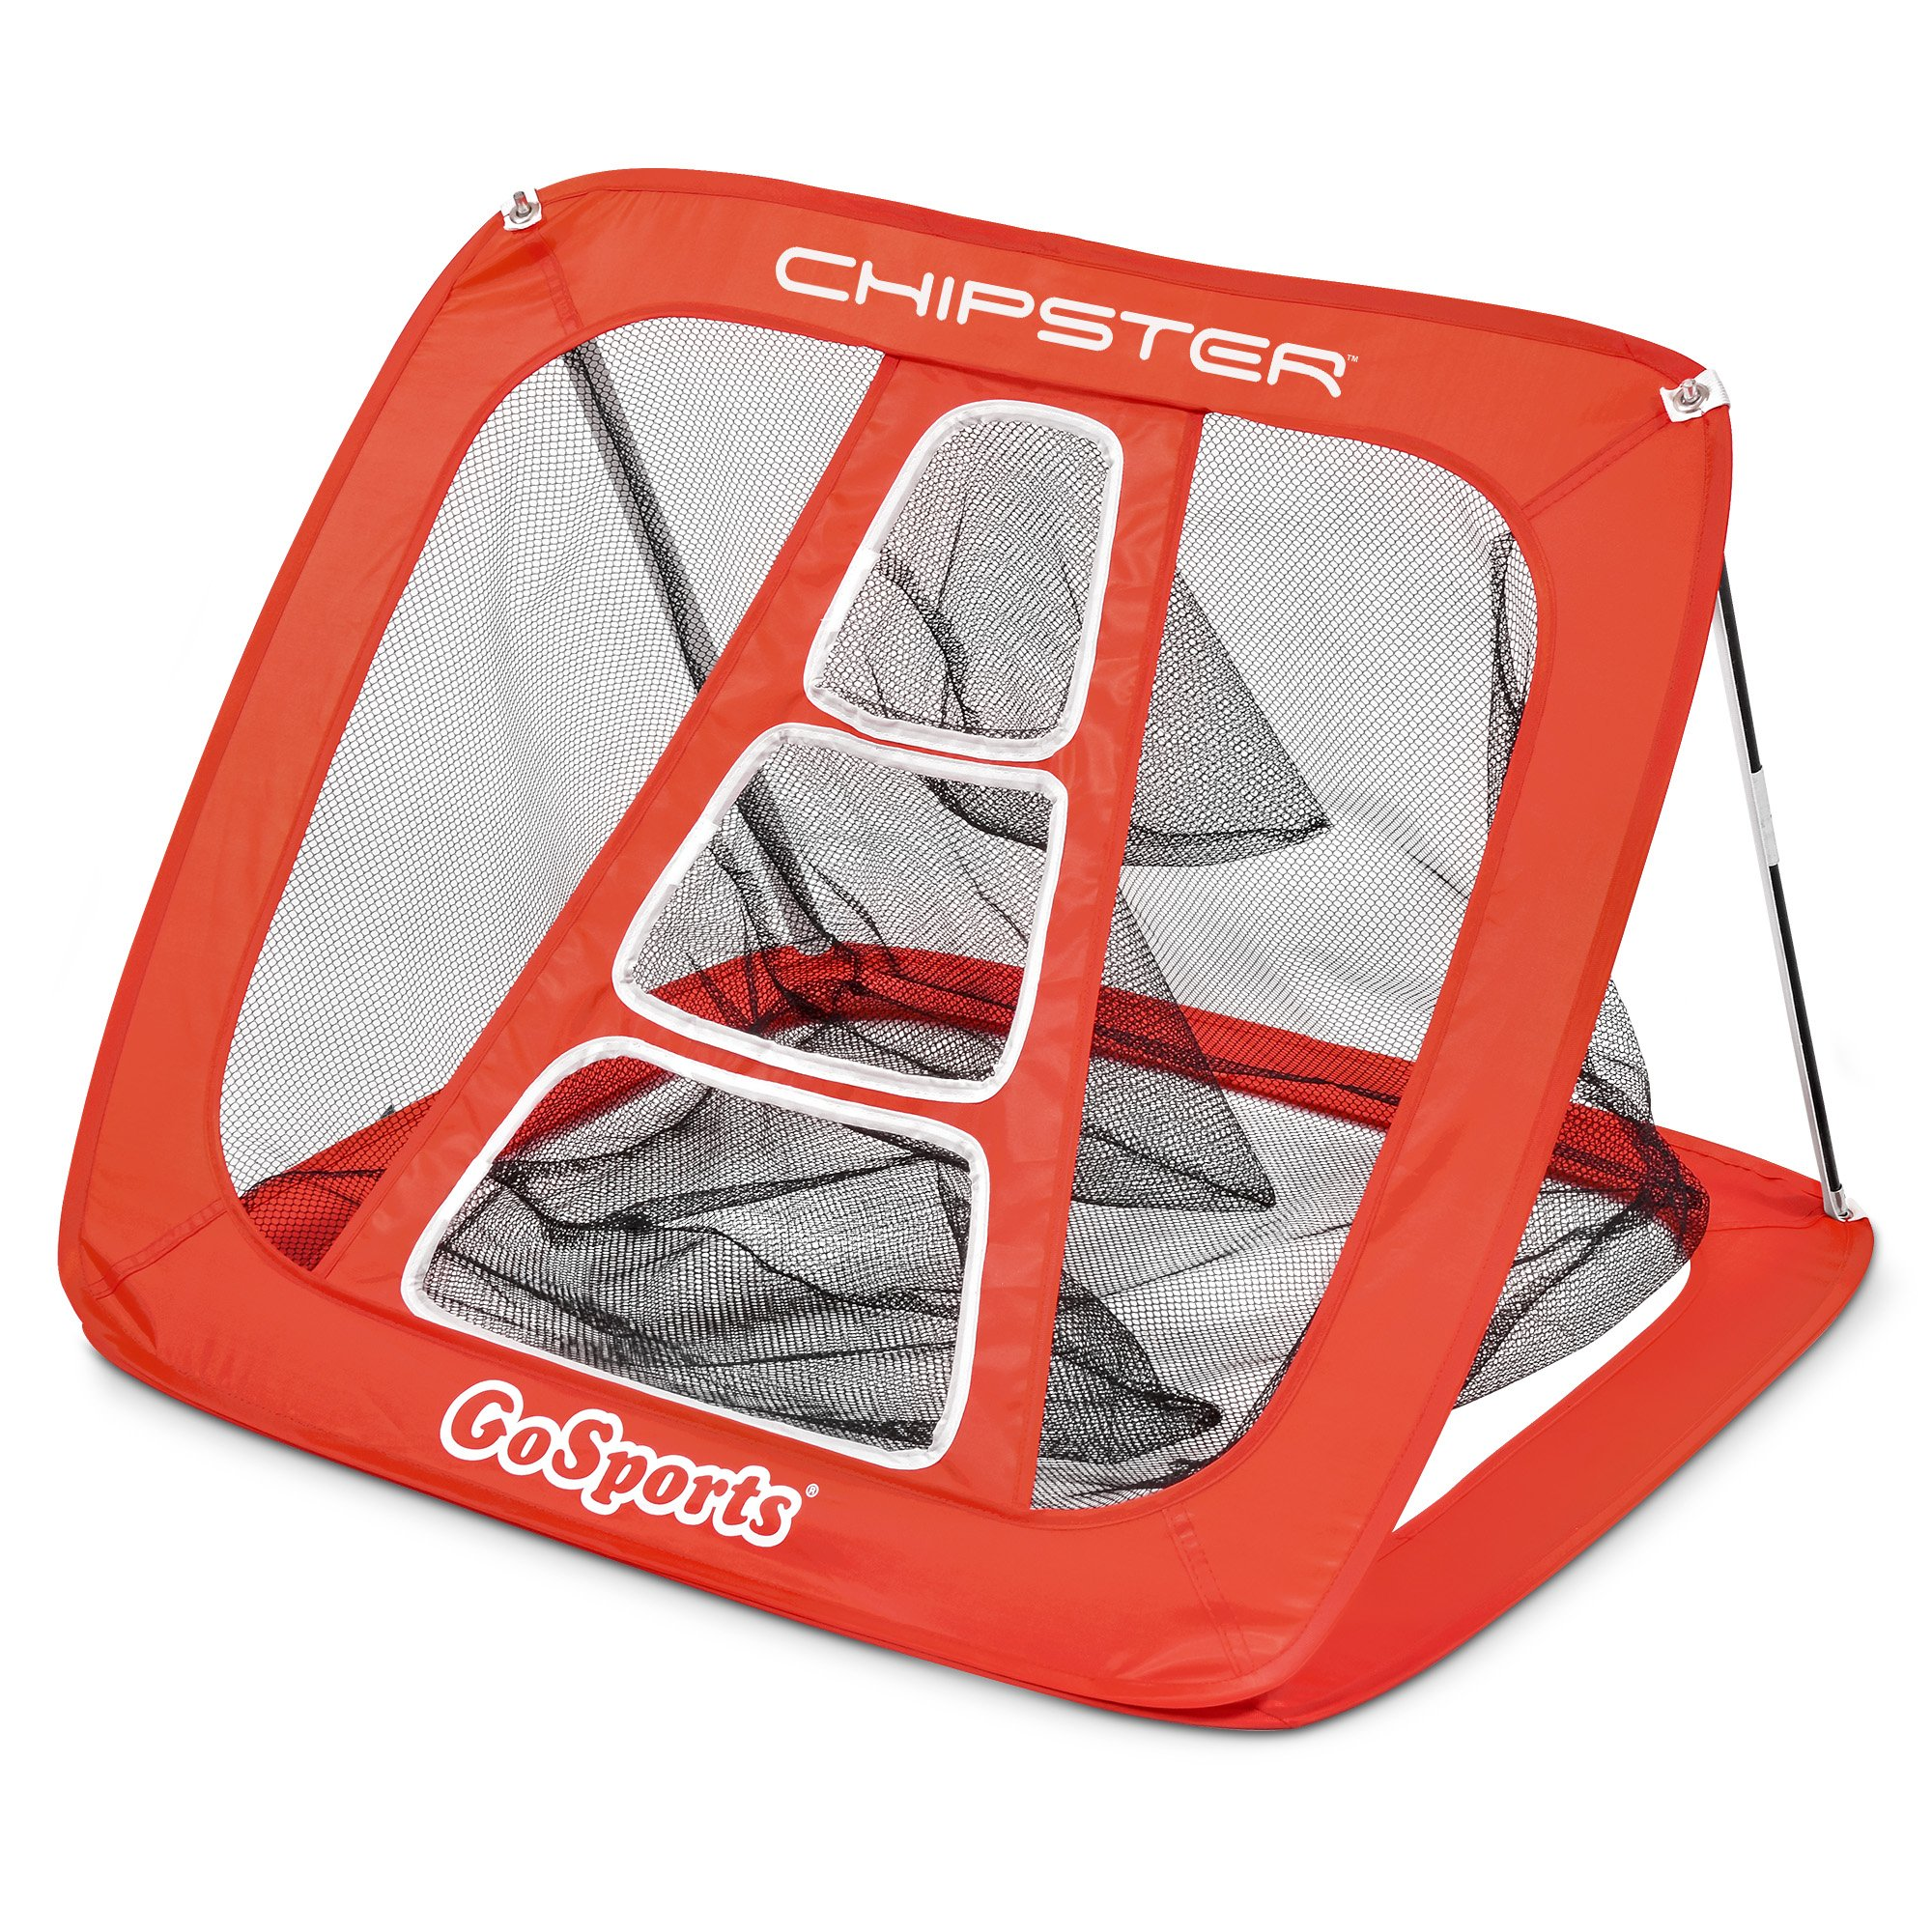 GoSports Chipster Golf Chipping Practice Net | Great for All Skill Levels